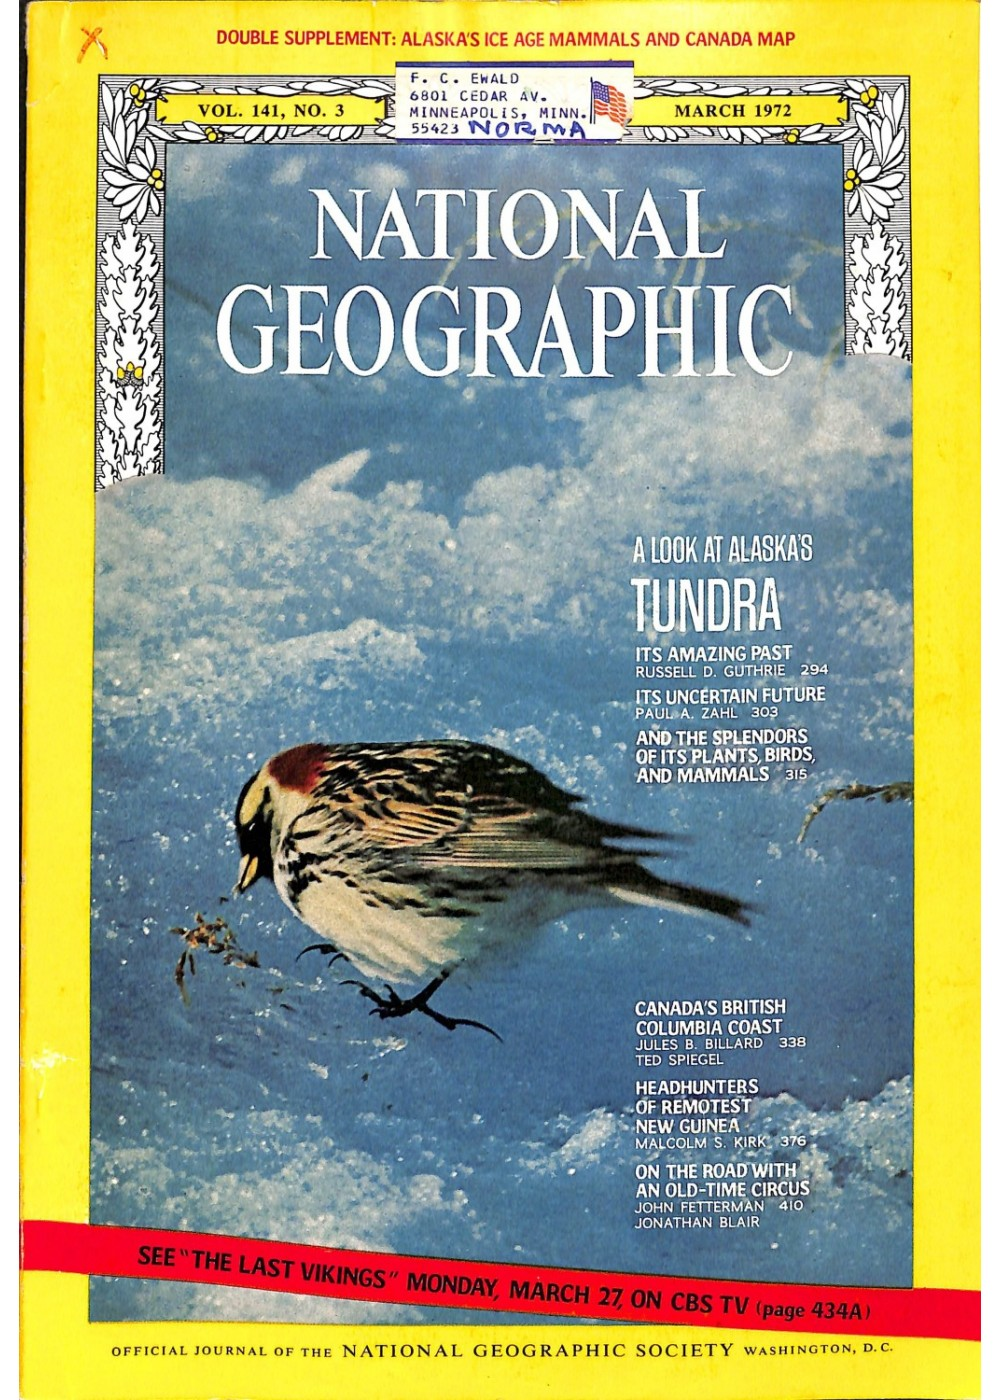 National Geographic, March 1972